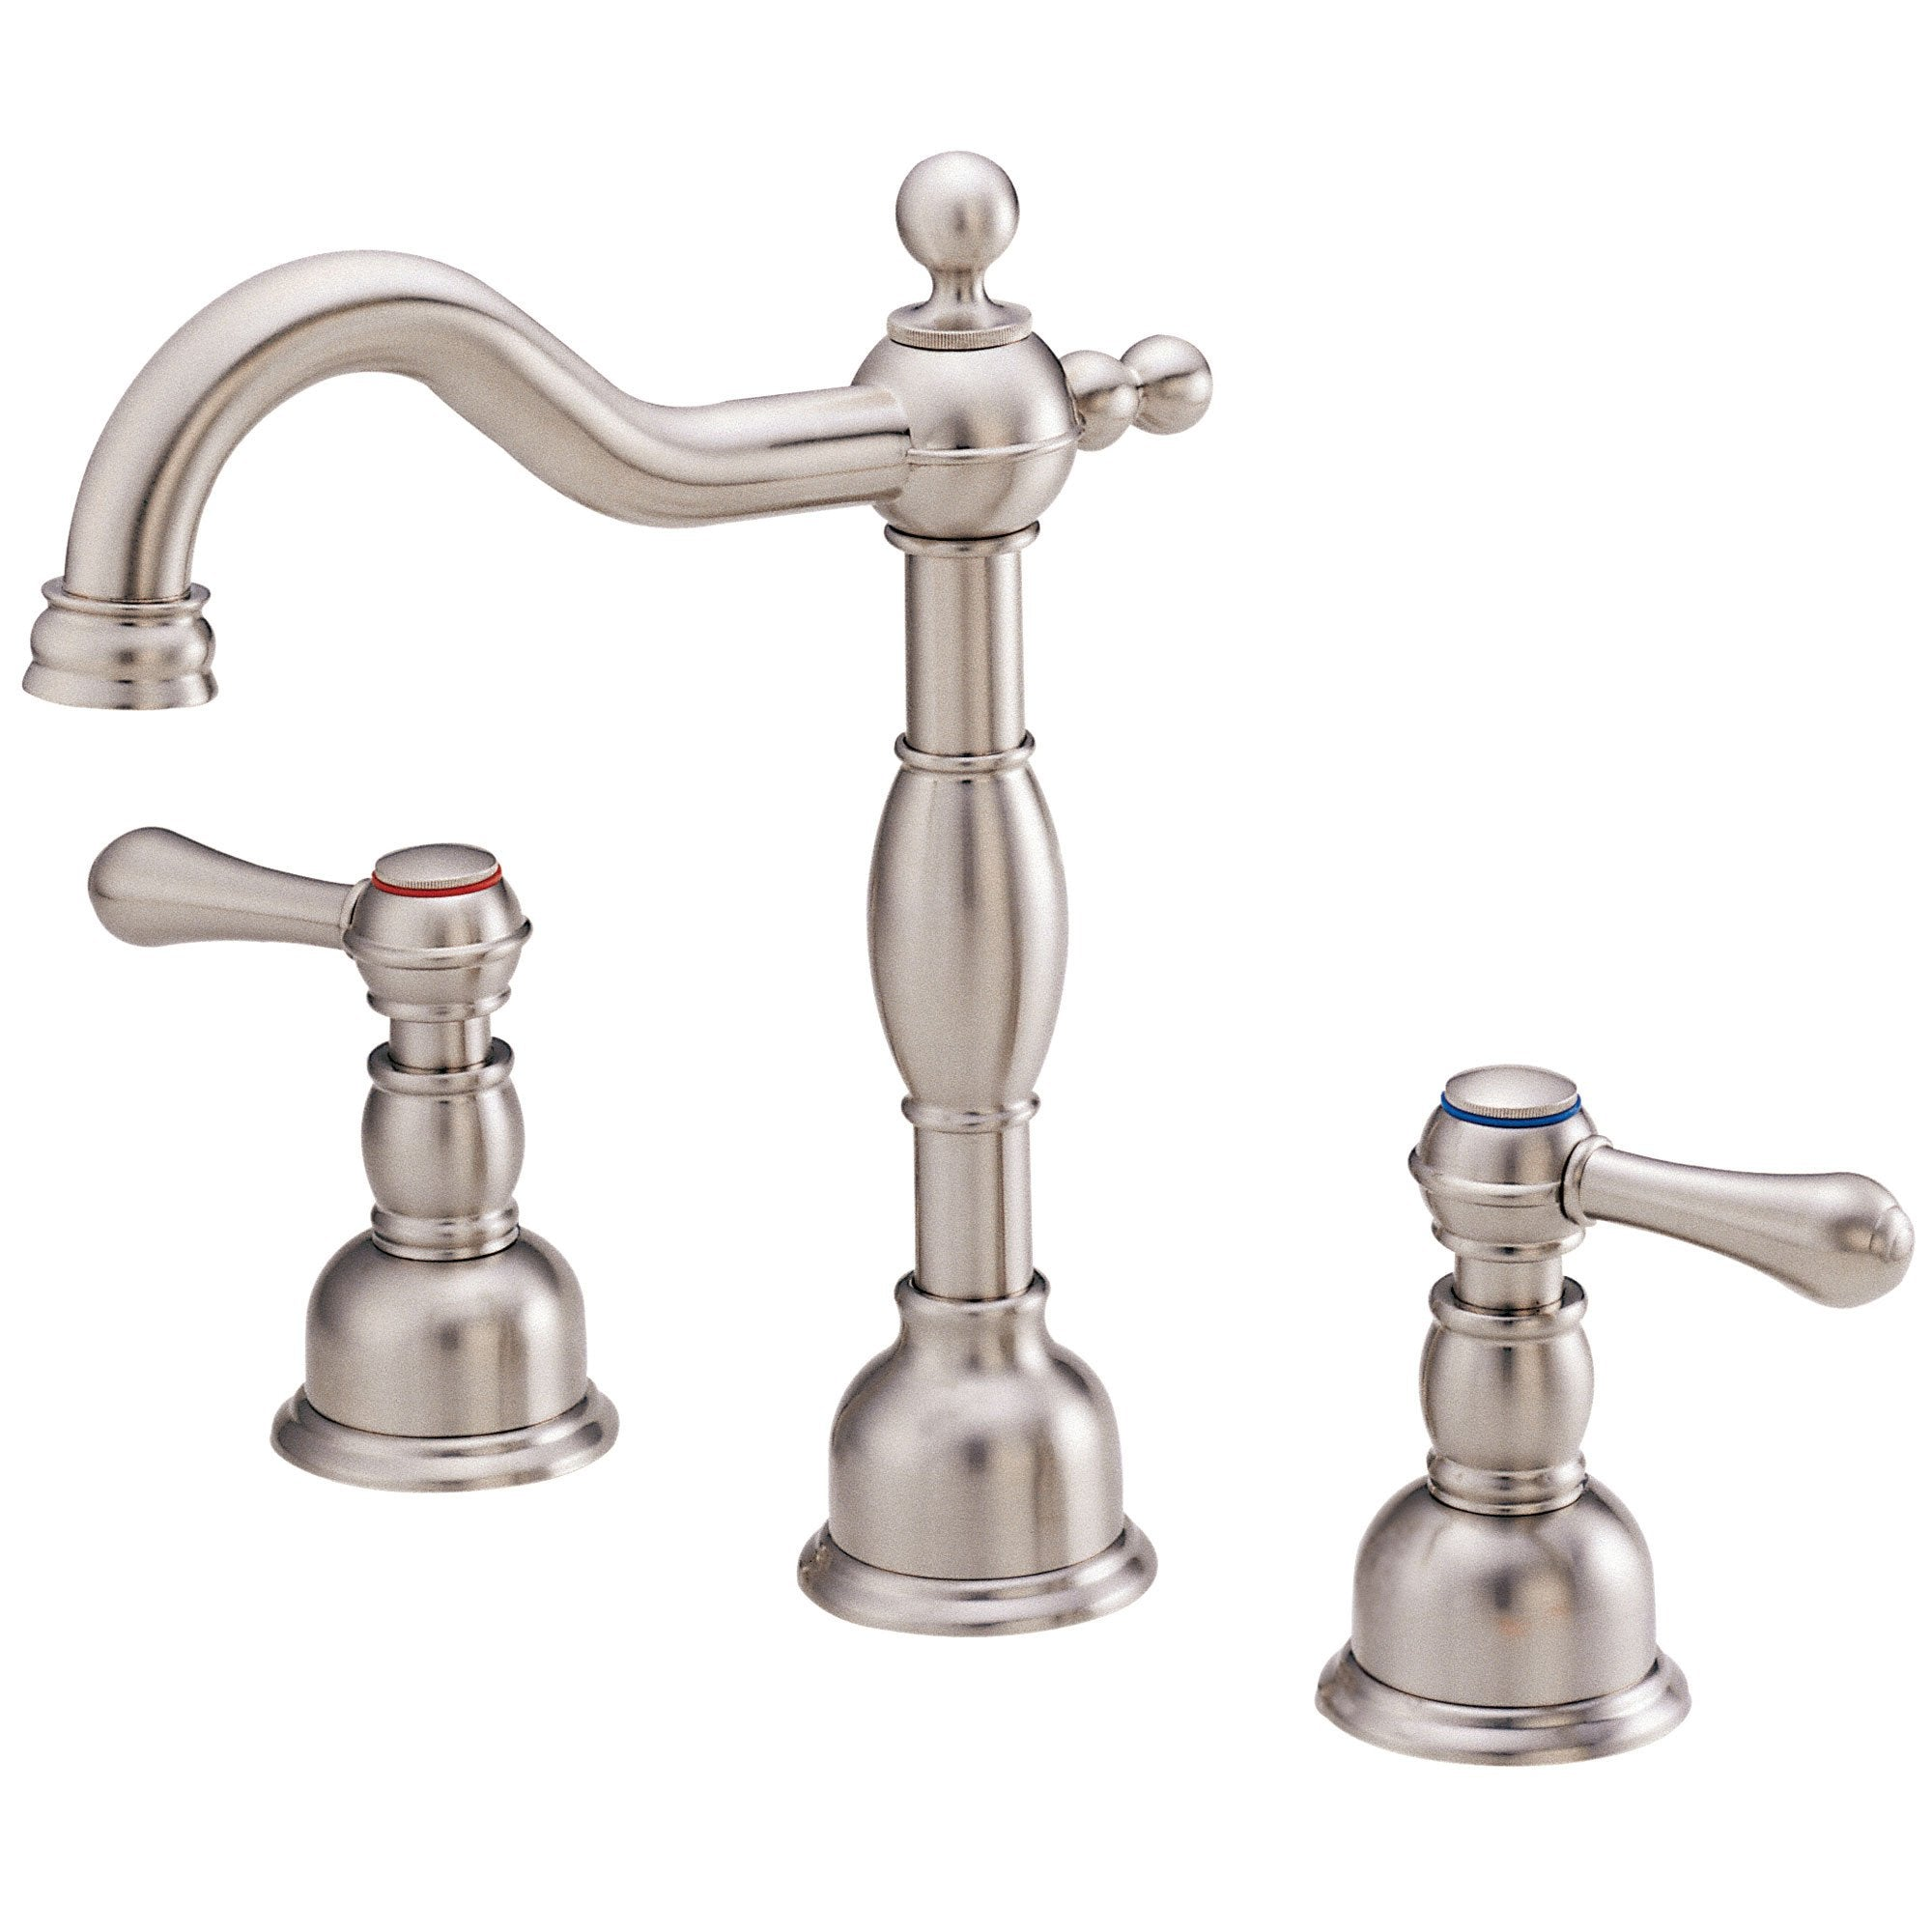 Danze Opulence Brushed Nickel Traditional Widespread Roman Tub Filler Faucet INCLUDES Rough-in Valve